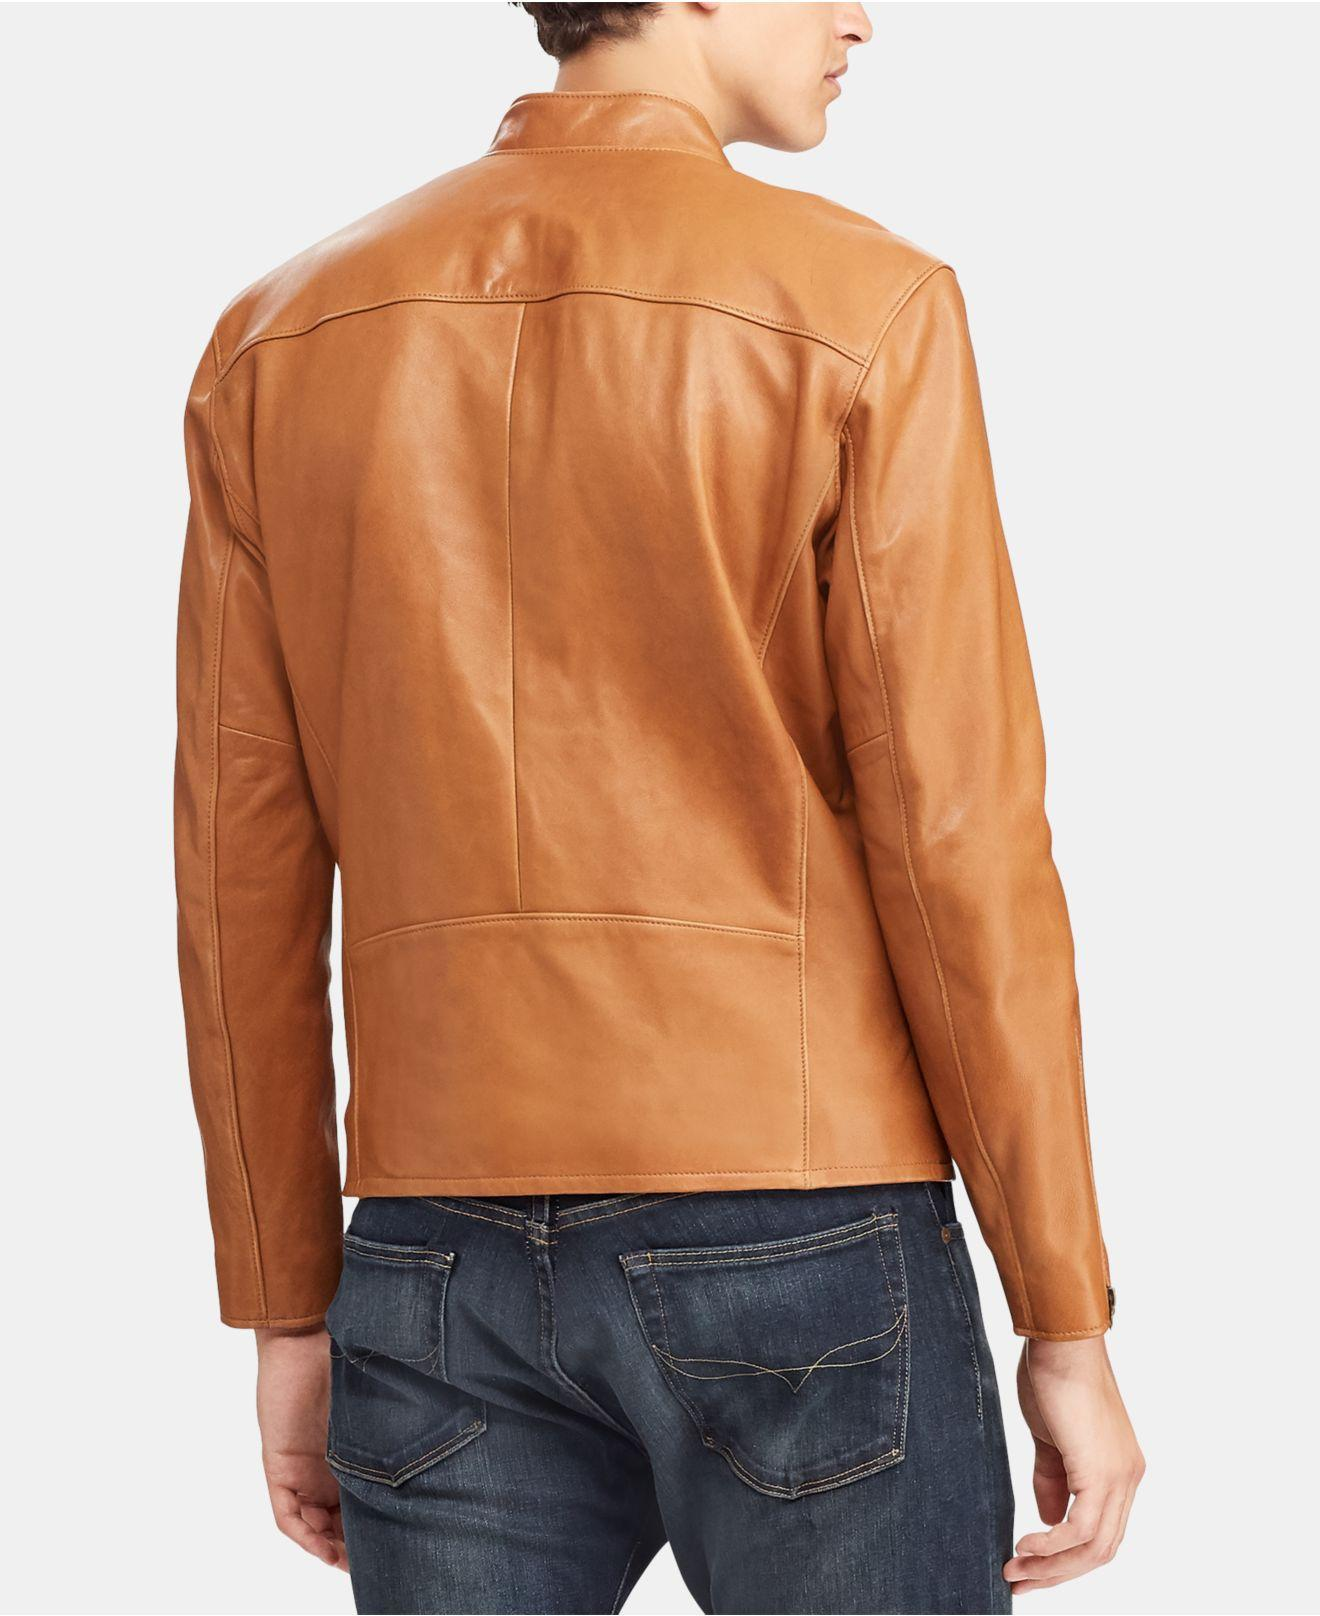 Lyst - Polo Ralph Lauren Men s Cafe Racer Leather Jacket in Blue for Men 1f01b07a7d0b0